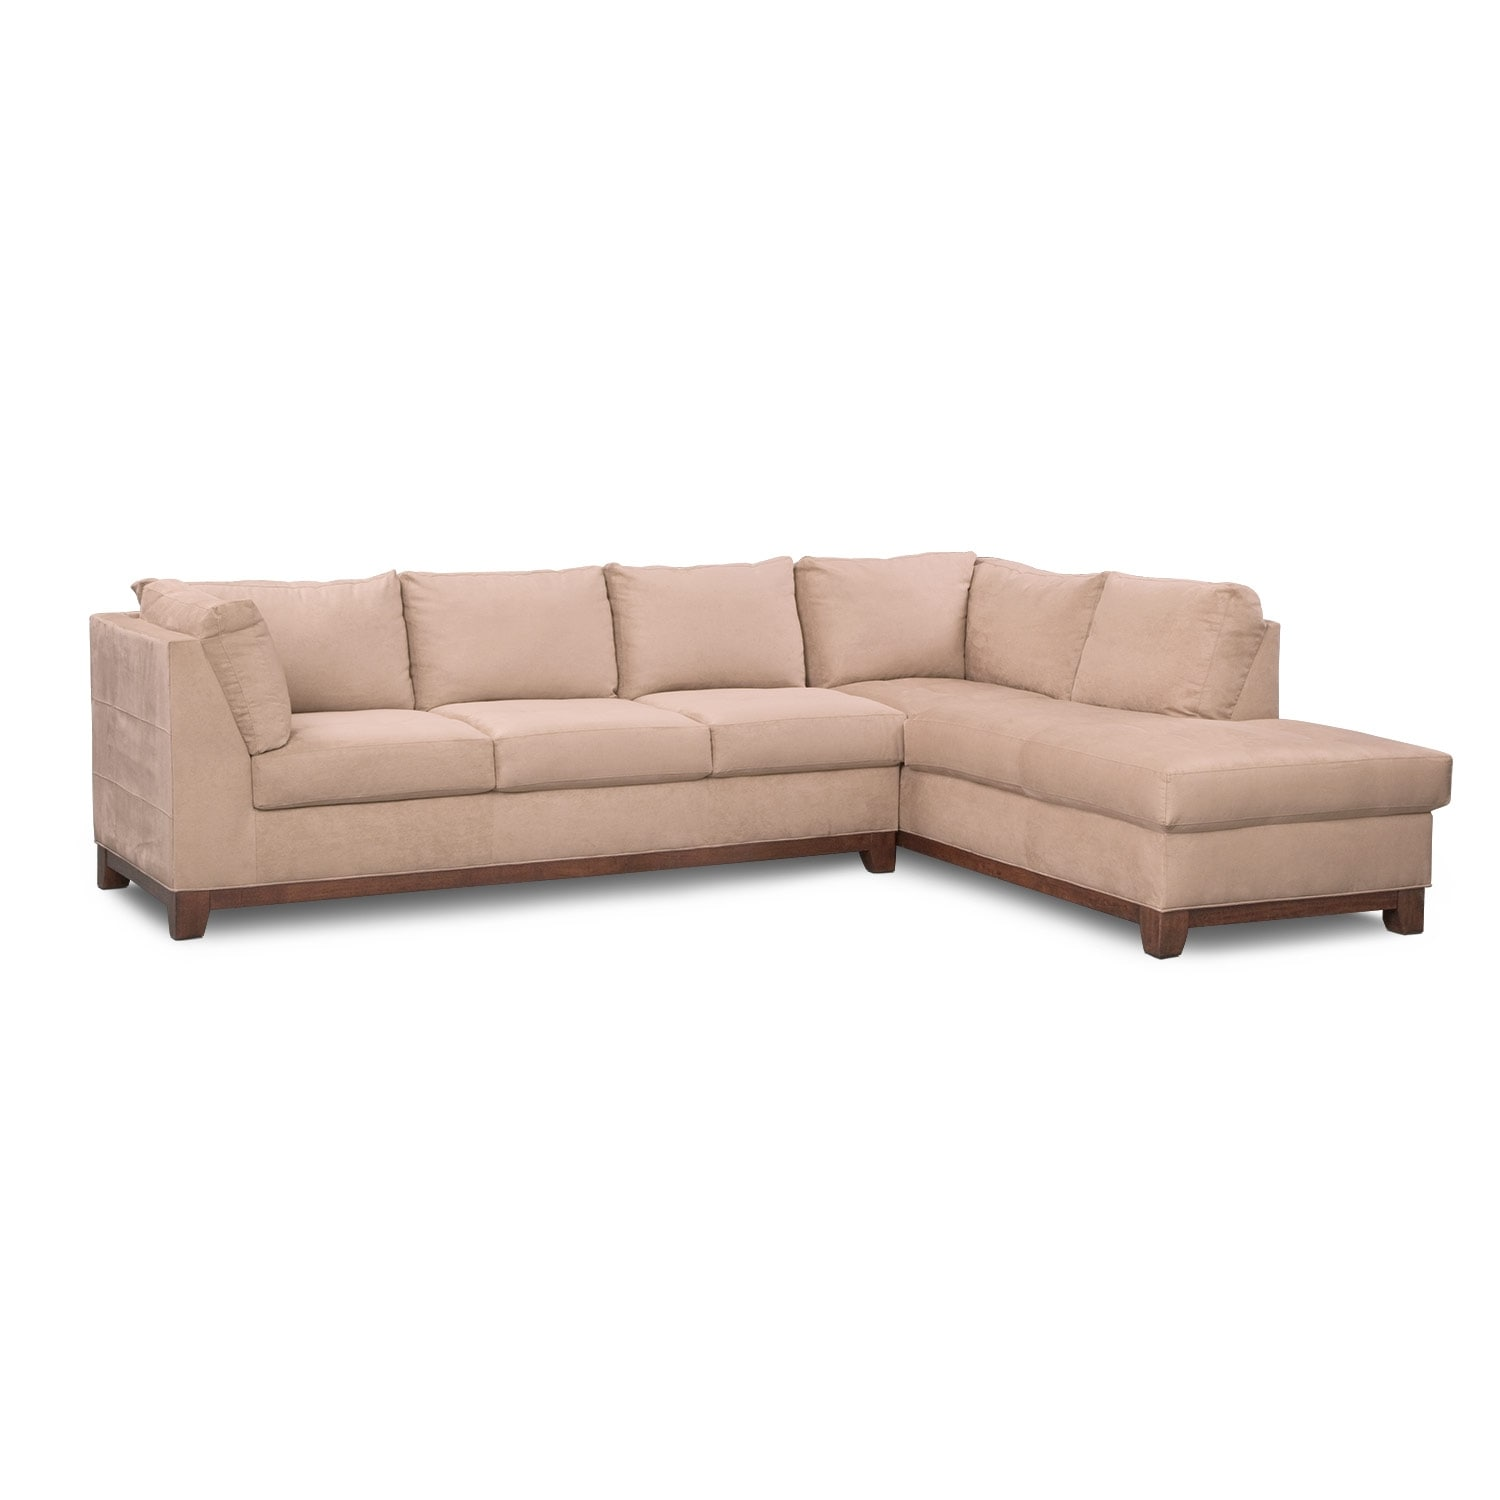 Living Room Furniture - Soho II 2 Pc. Sectional